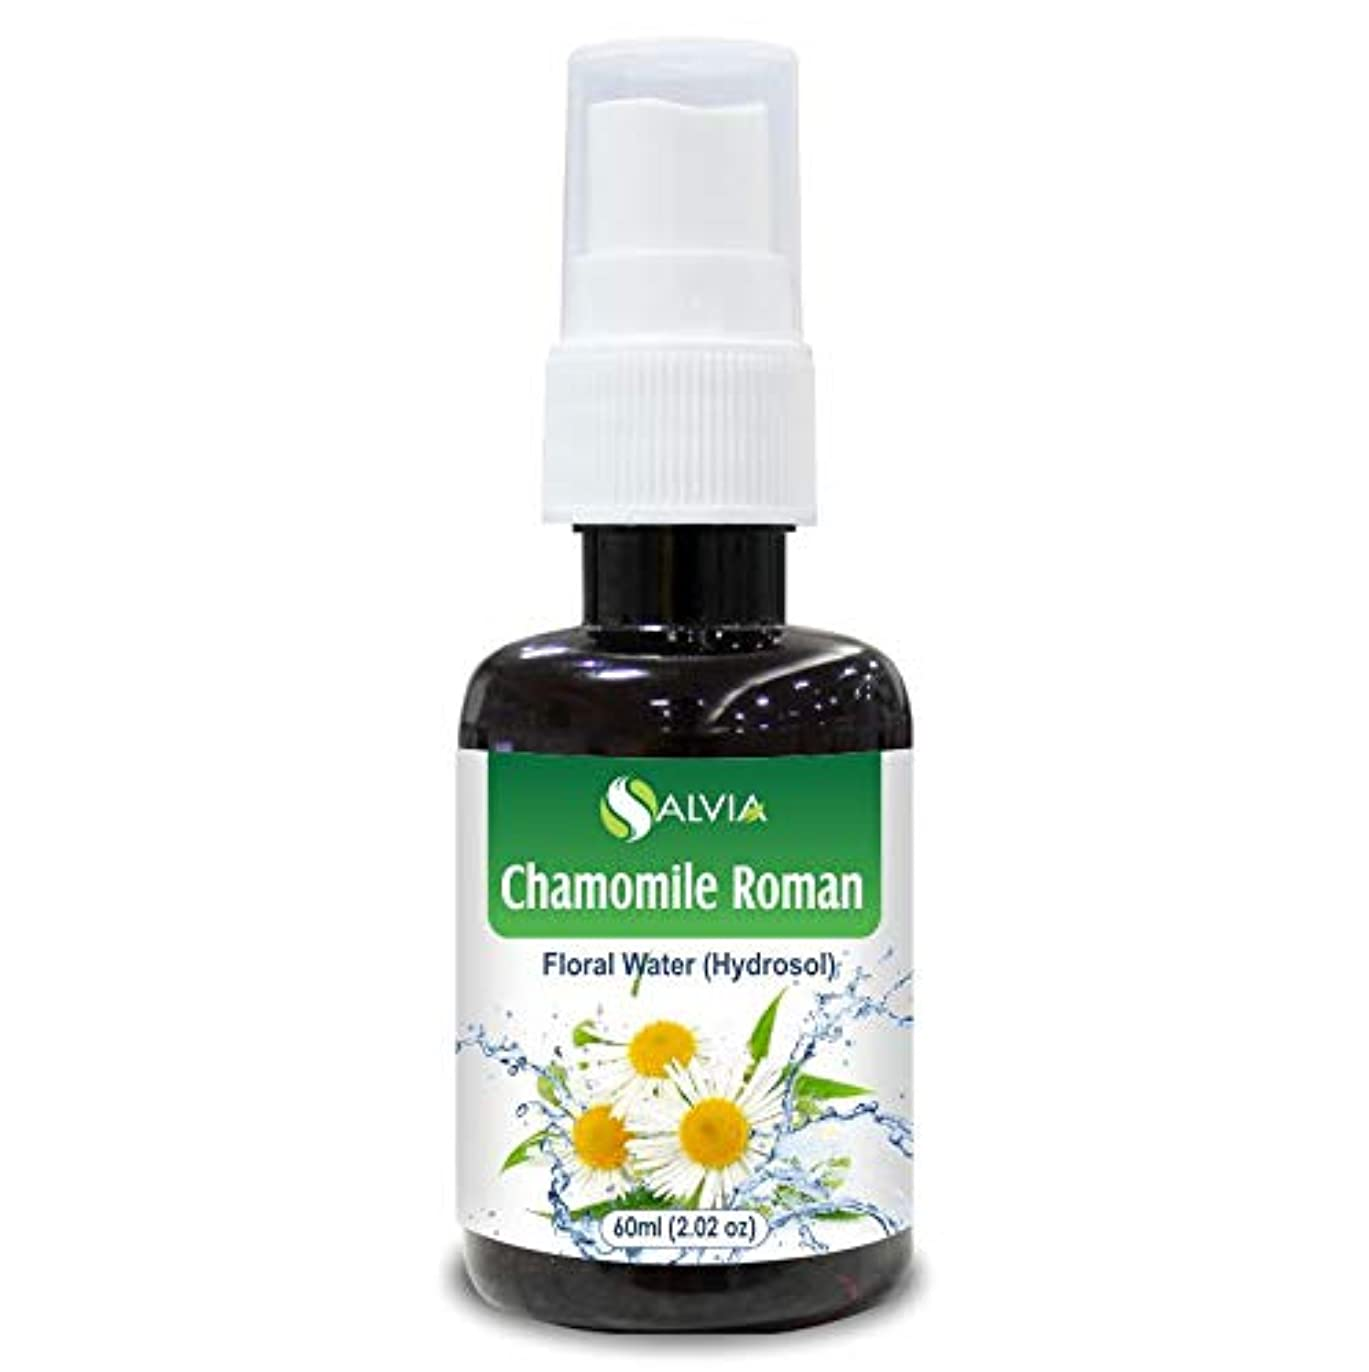 招待鋸歯状離すChamomile Oil, Roman Floral Water 60ml (Hydrosol) 100% Pure And Natural